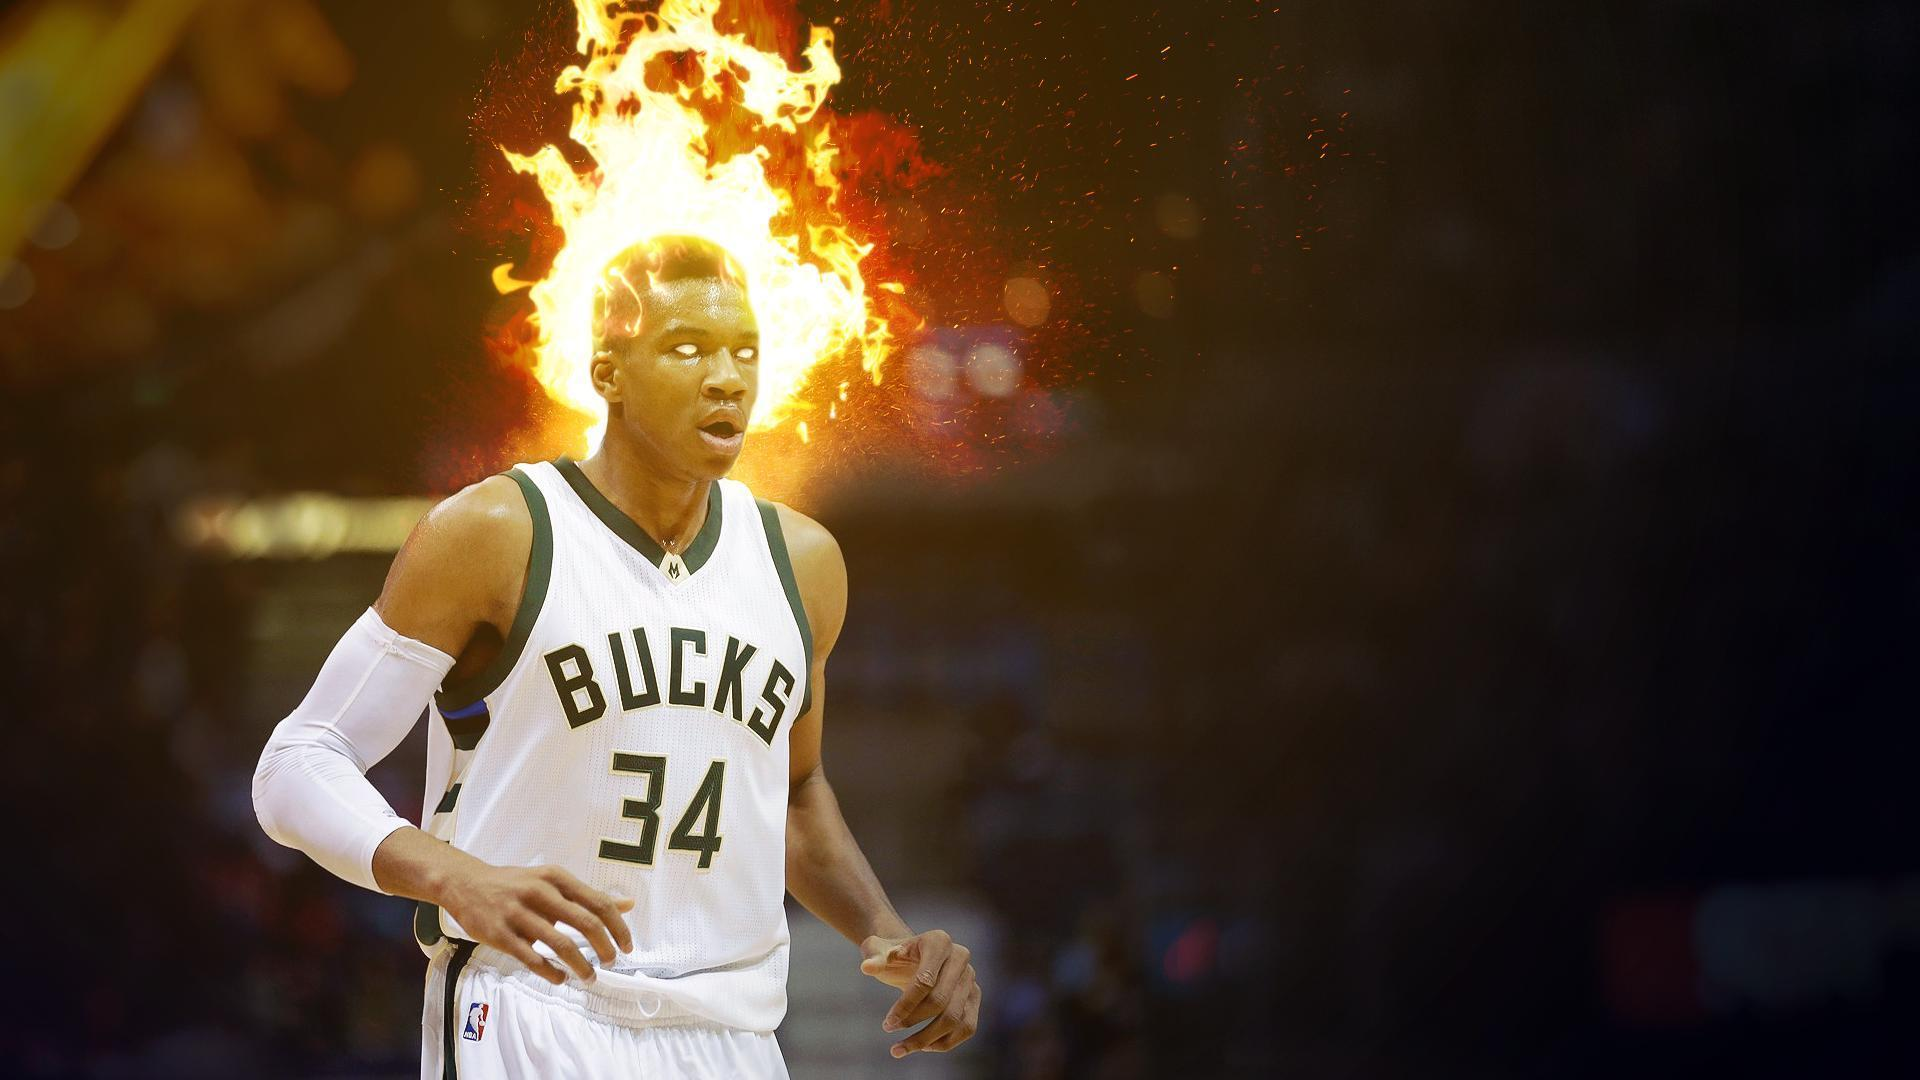 Giannis is on fire! [Wallpaper 1920x1080] : MkeBucks